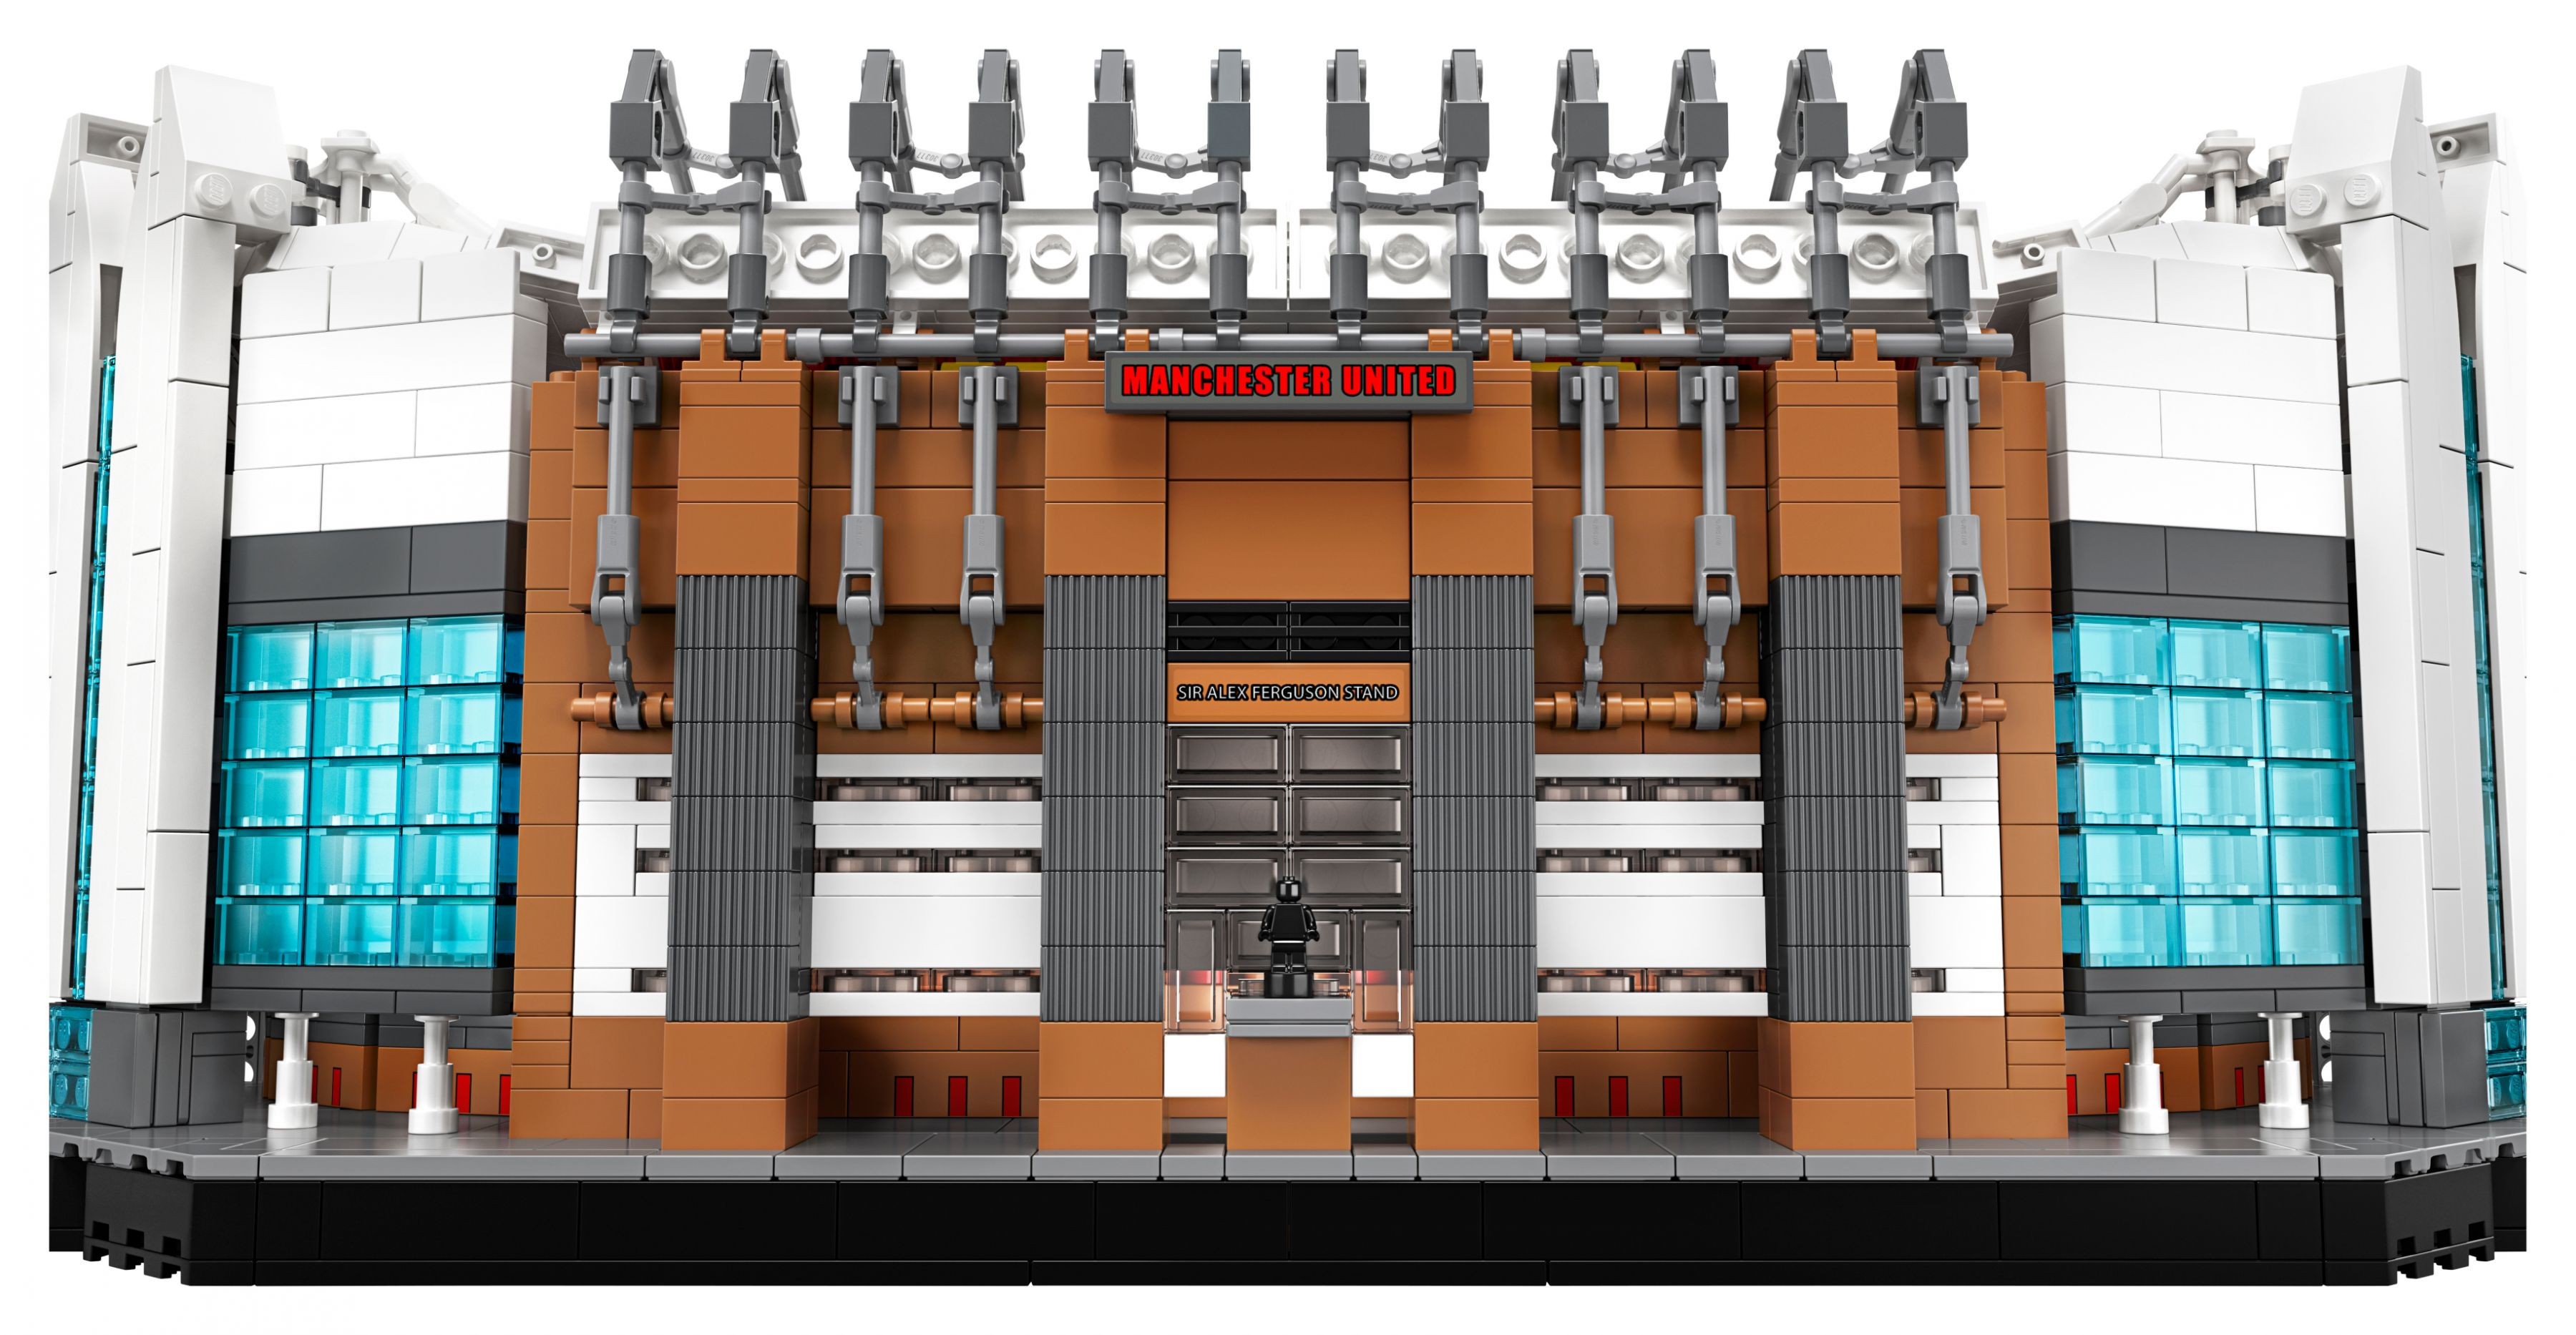 LEGO Advanced Models 10272 Old Trafford - Manchester United LEGO_10272_alt26.jpg